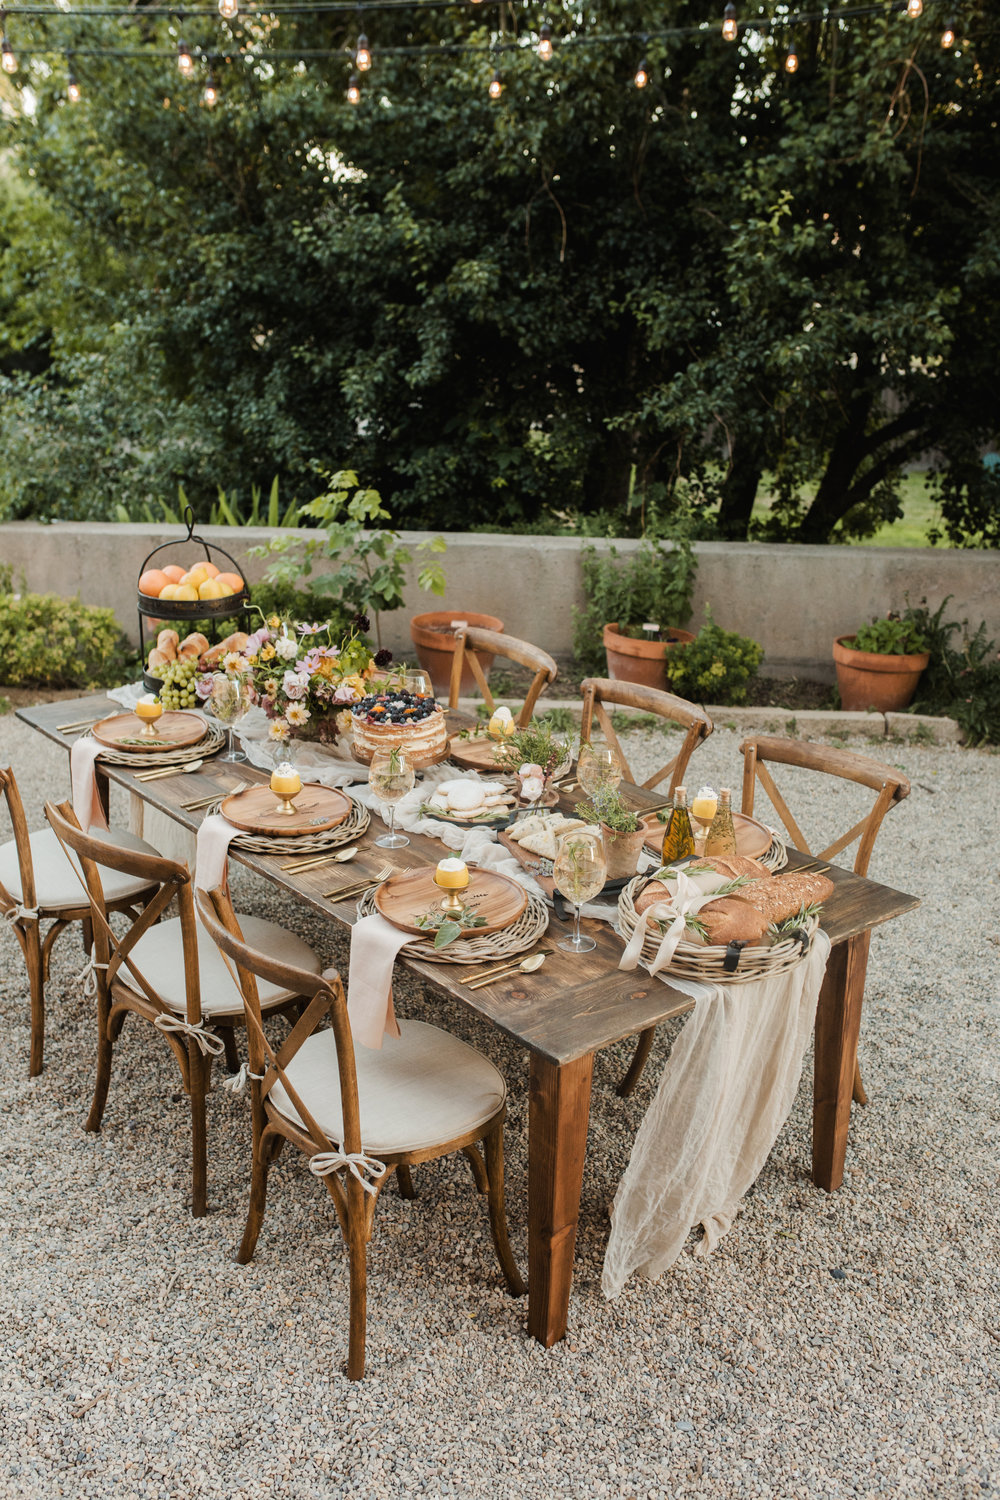 Italian Summer Wedding | Italian Inspired Wedding | Natural Wedding Details | Michelle Leo Events | Utah Event Planner and Designer | Alixann Loosle Photography